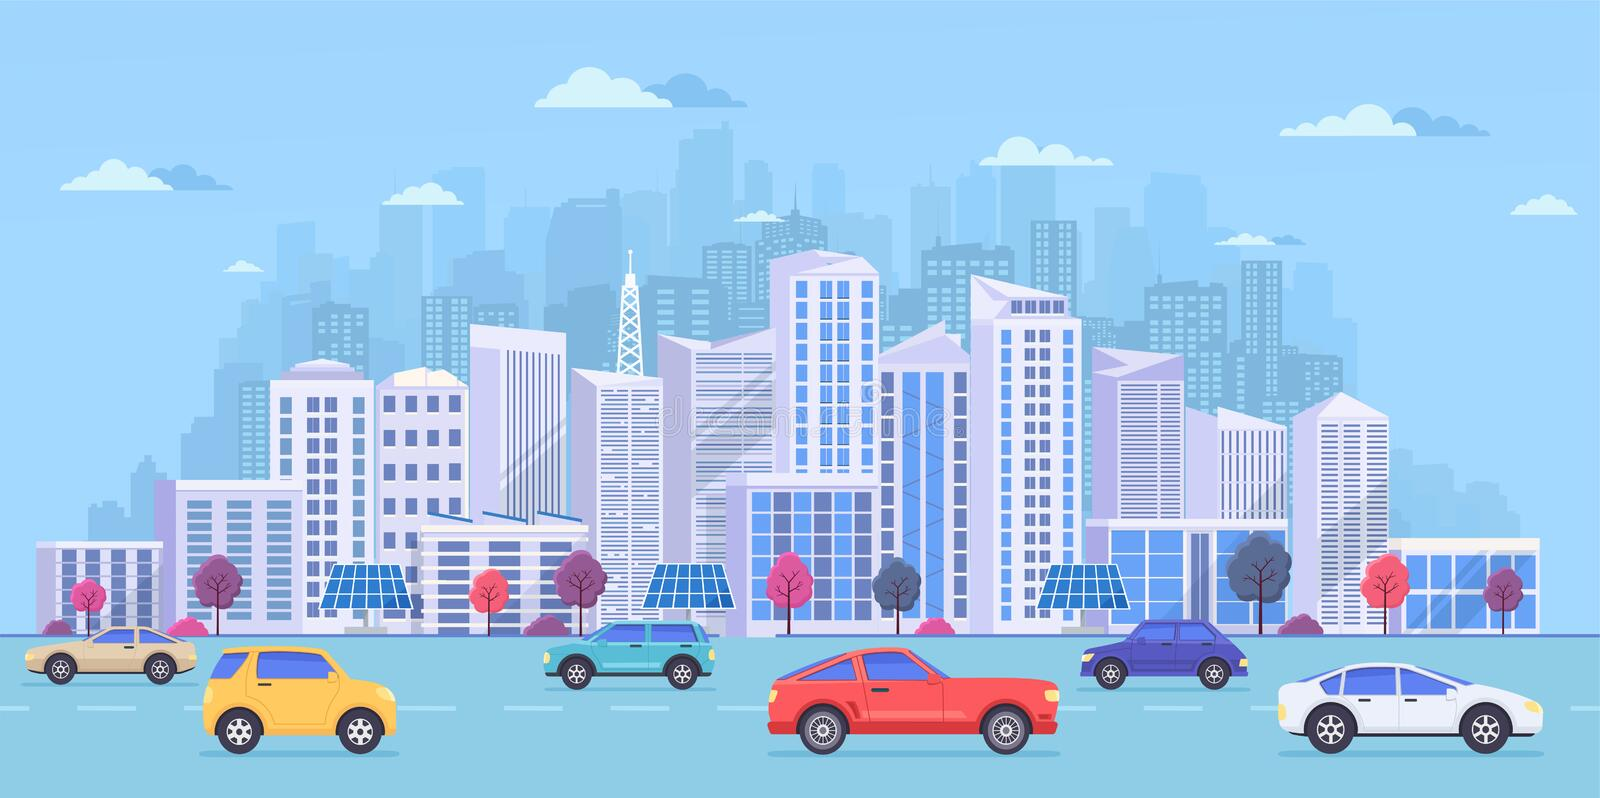 Cityscape with large modern buildings, city transport, traffic on the street. vector illustration